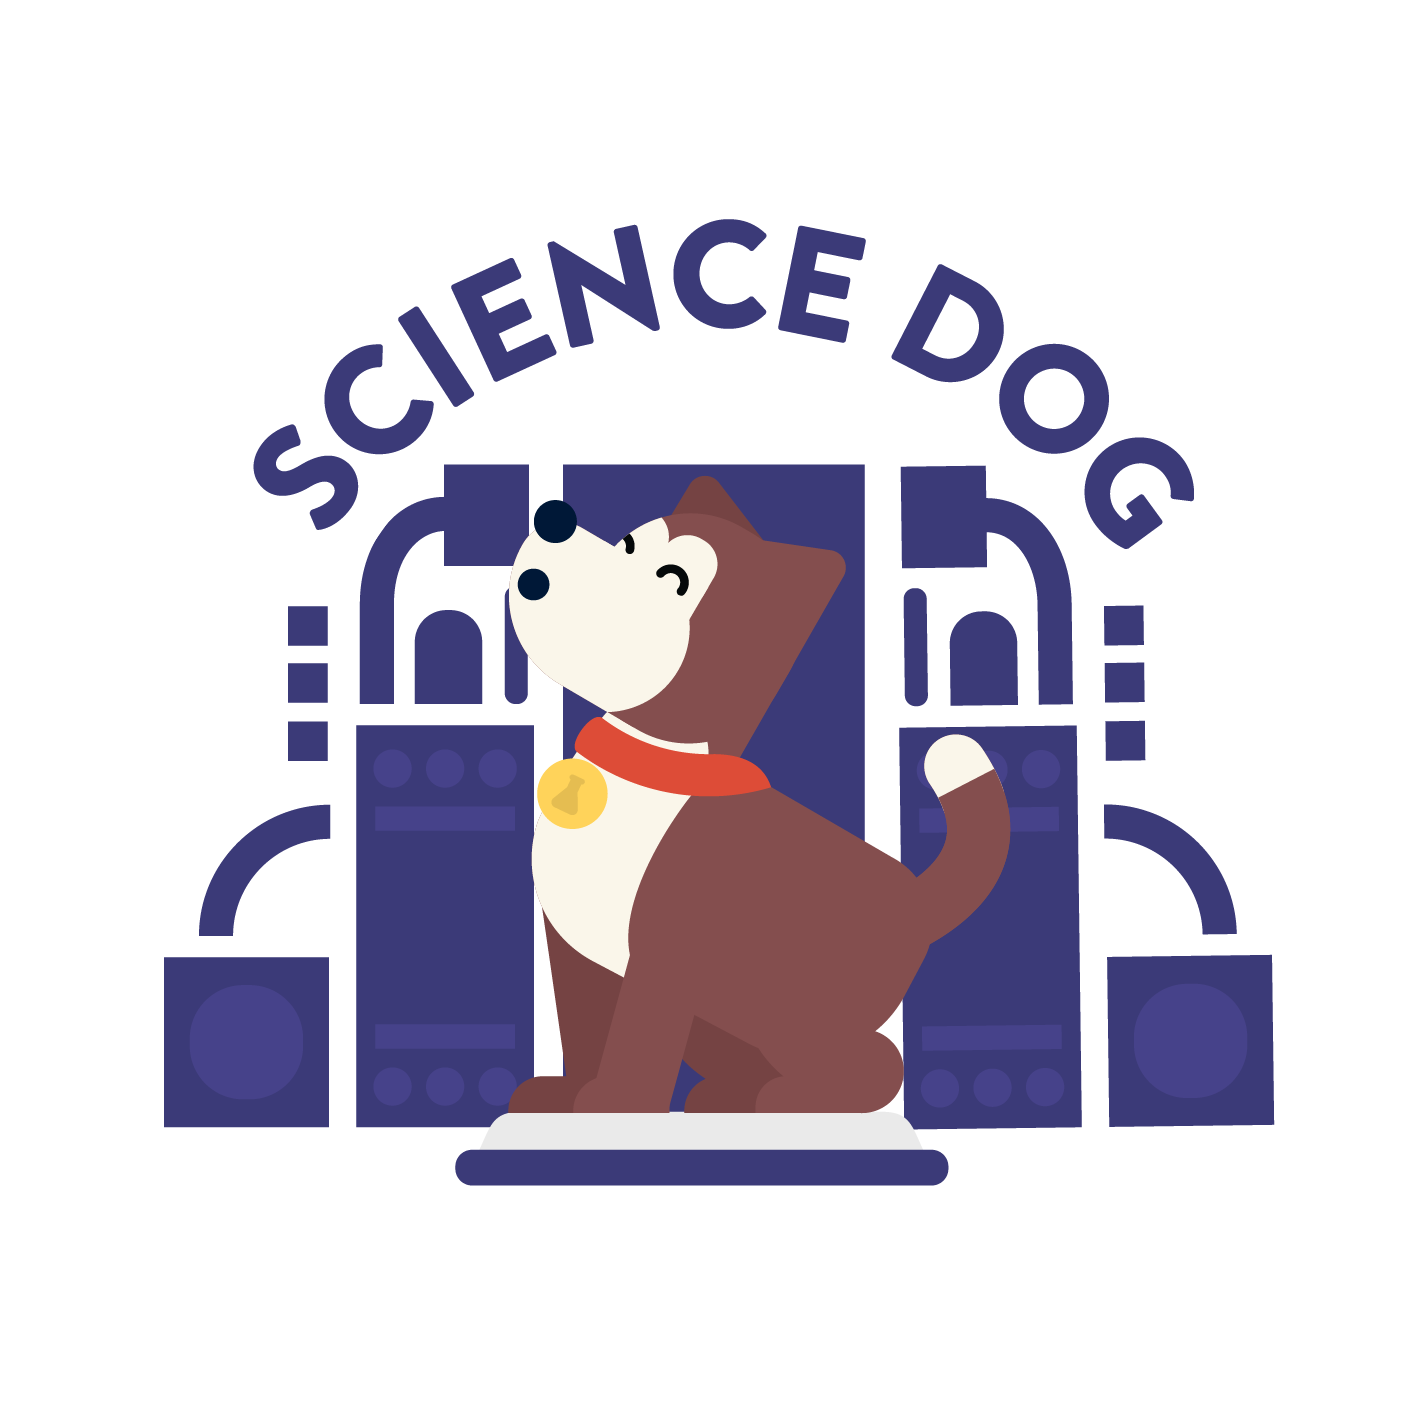 science dog barking